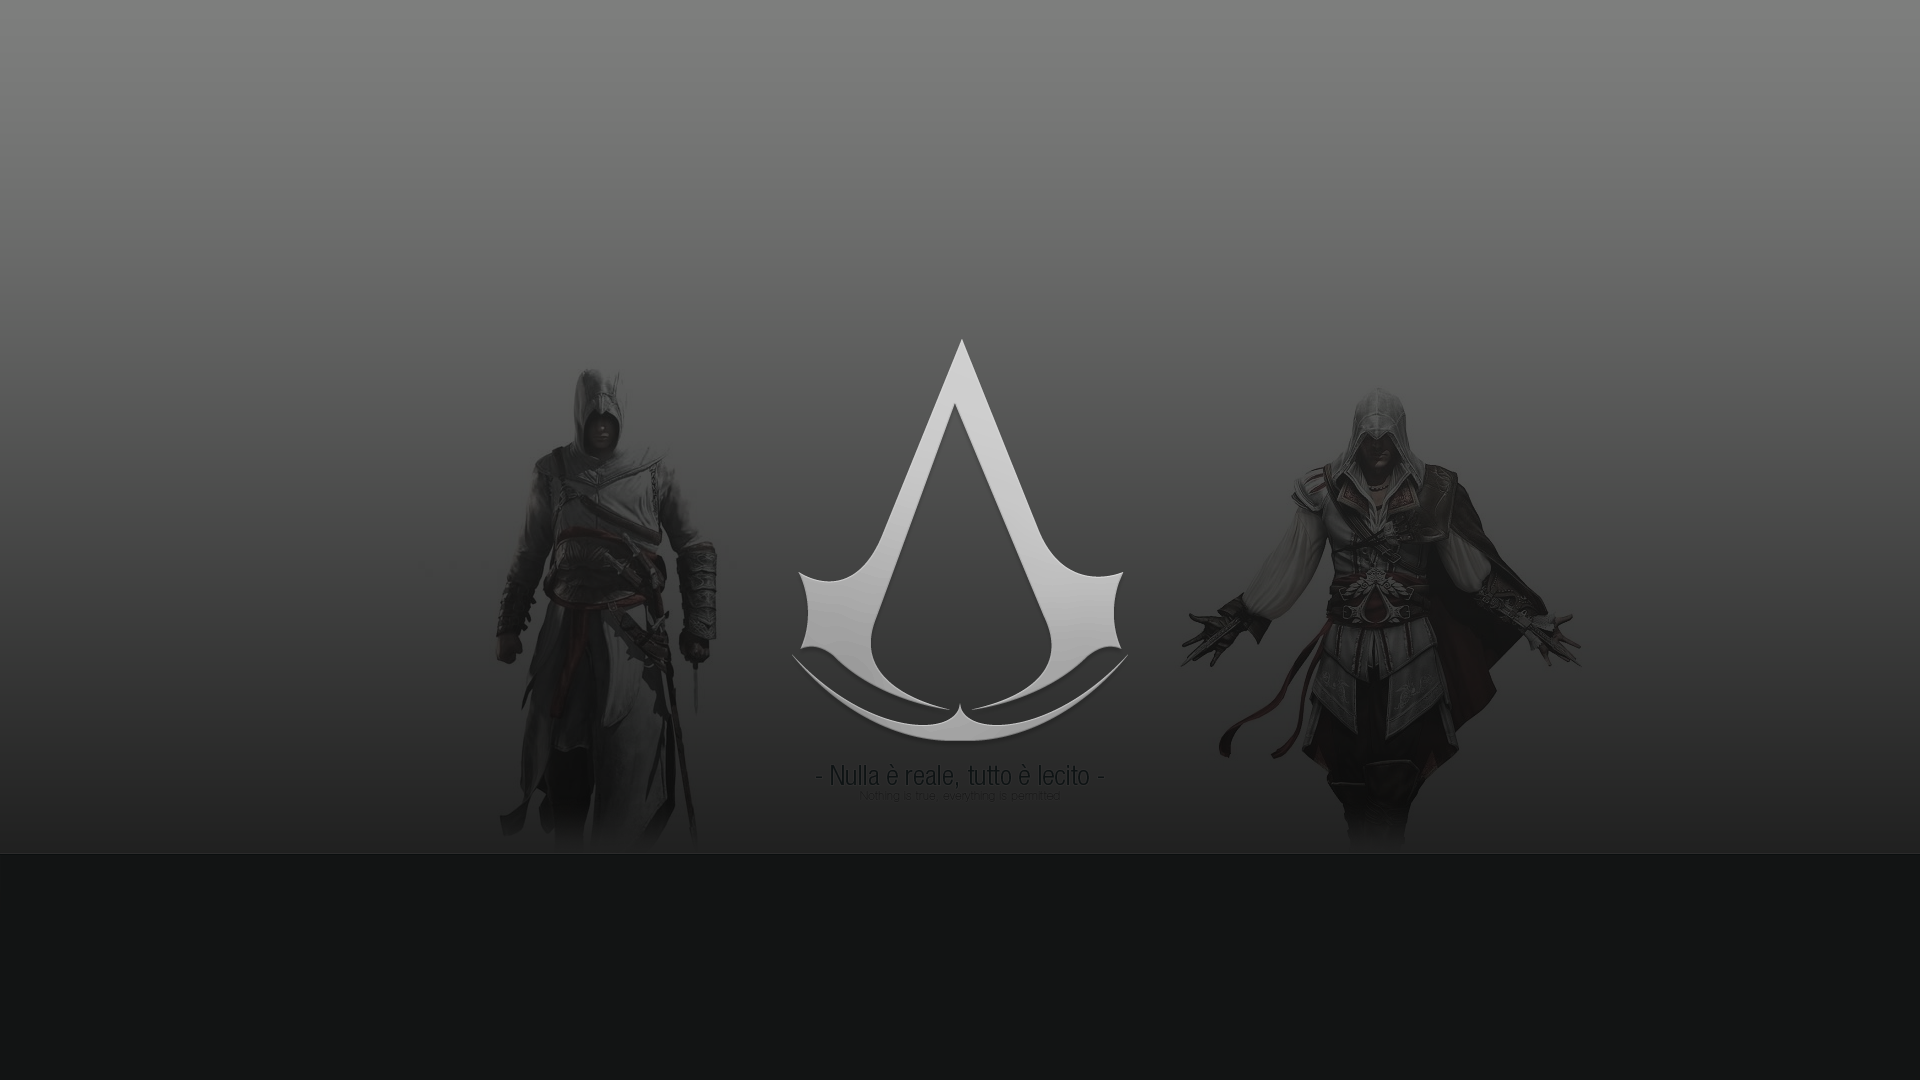 Assassins Creed By Pvd21 On DeviantArt